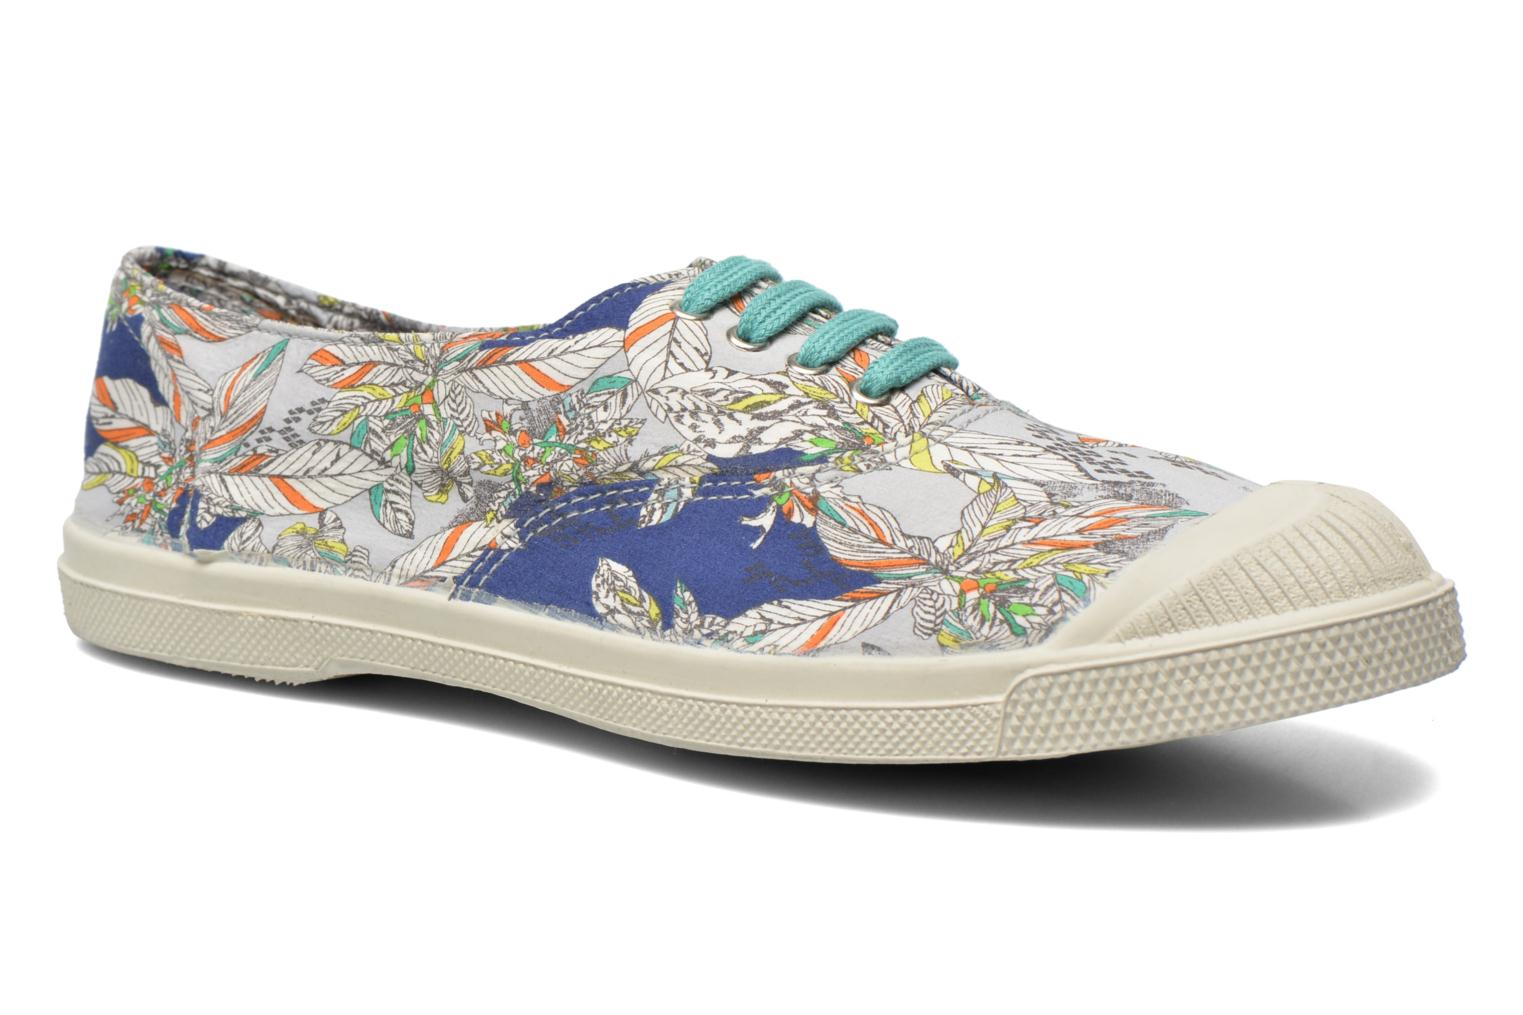 Bensimon Tennis Liberty (Multicolore) - Baskets en Más cómodo Dédouanement saisonnier